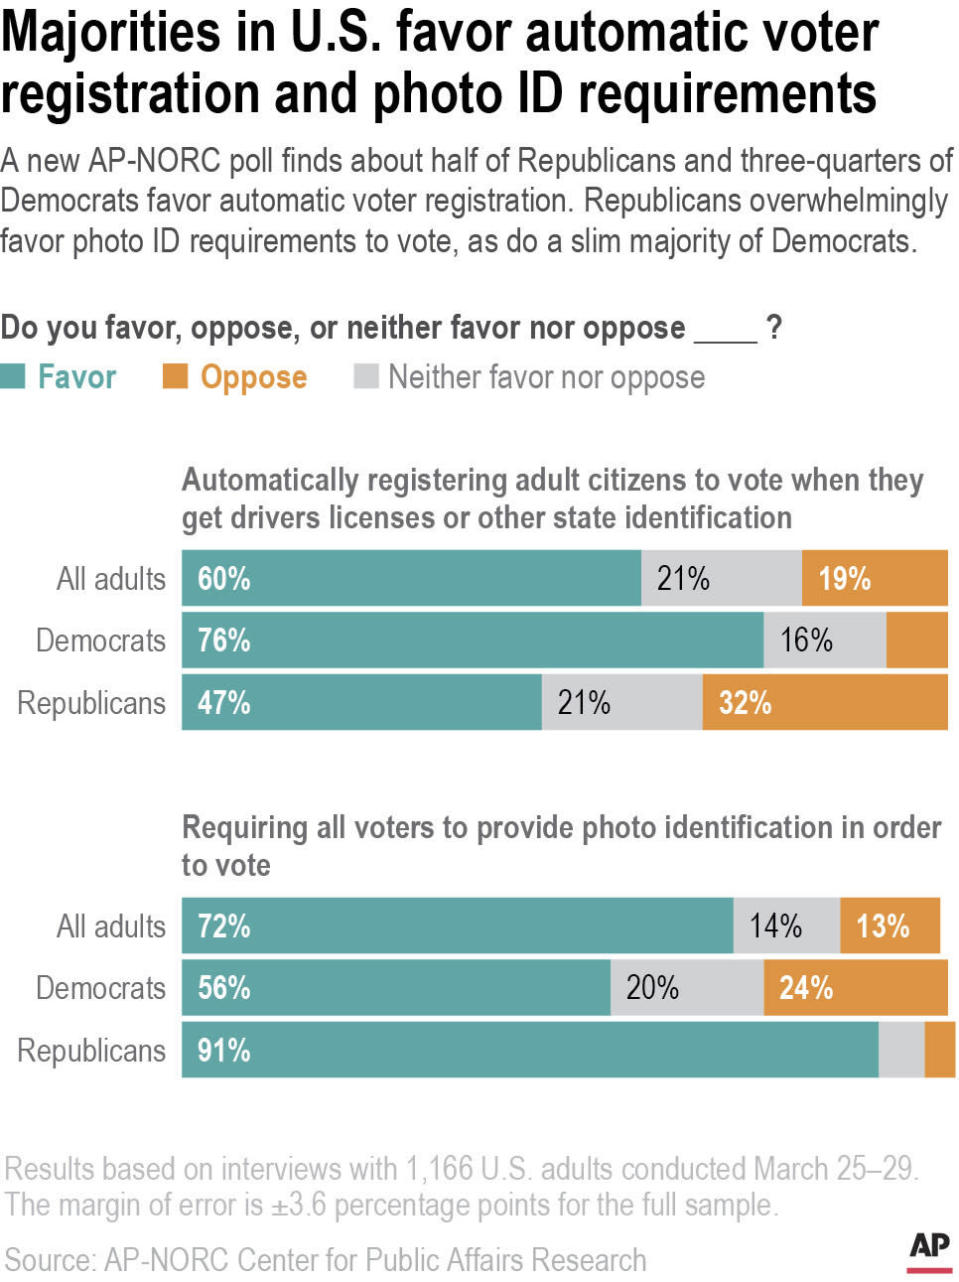 A new AP-NORC poll finds about half of Republicans and three-quarters of Democrats favor automatic voter registration. Republicans overwhelmingly favor photo ID requirements to vote, as do a slim majority of Democrats.